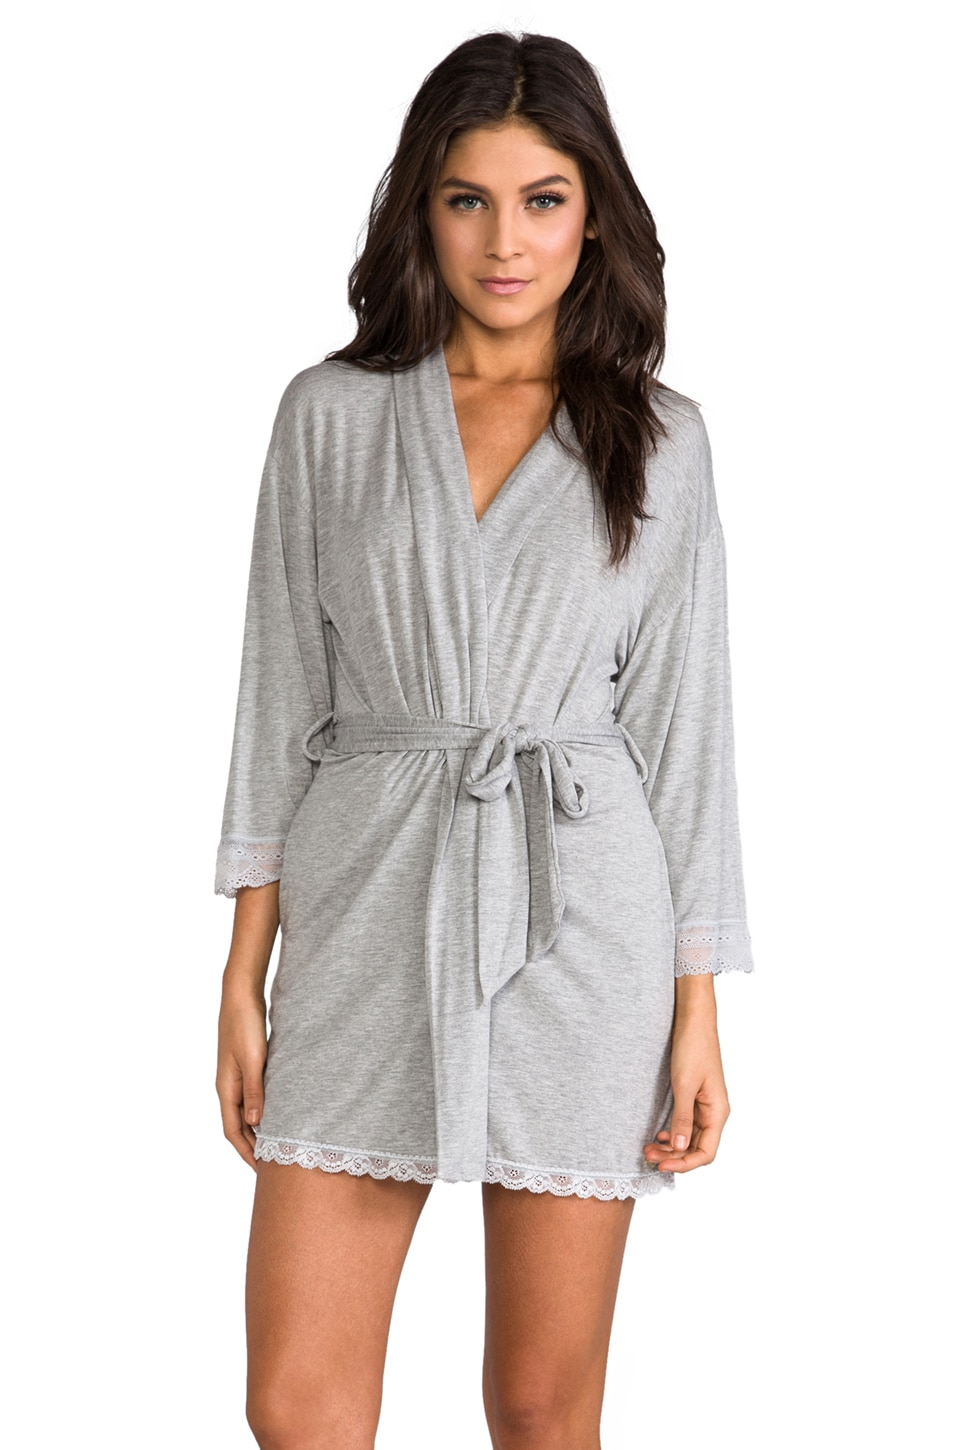 Juicy Couture Sleep Essential Robe in Heather Cozy